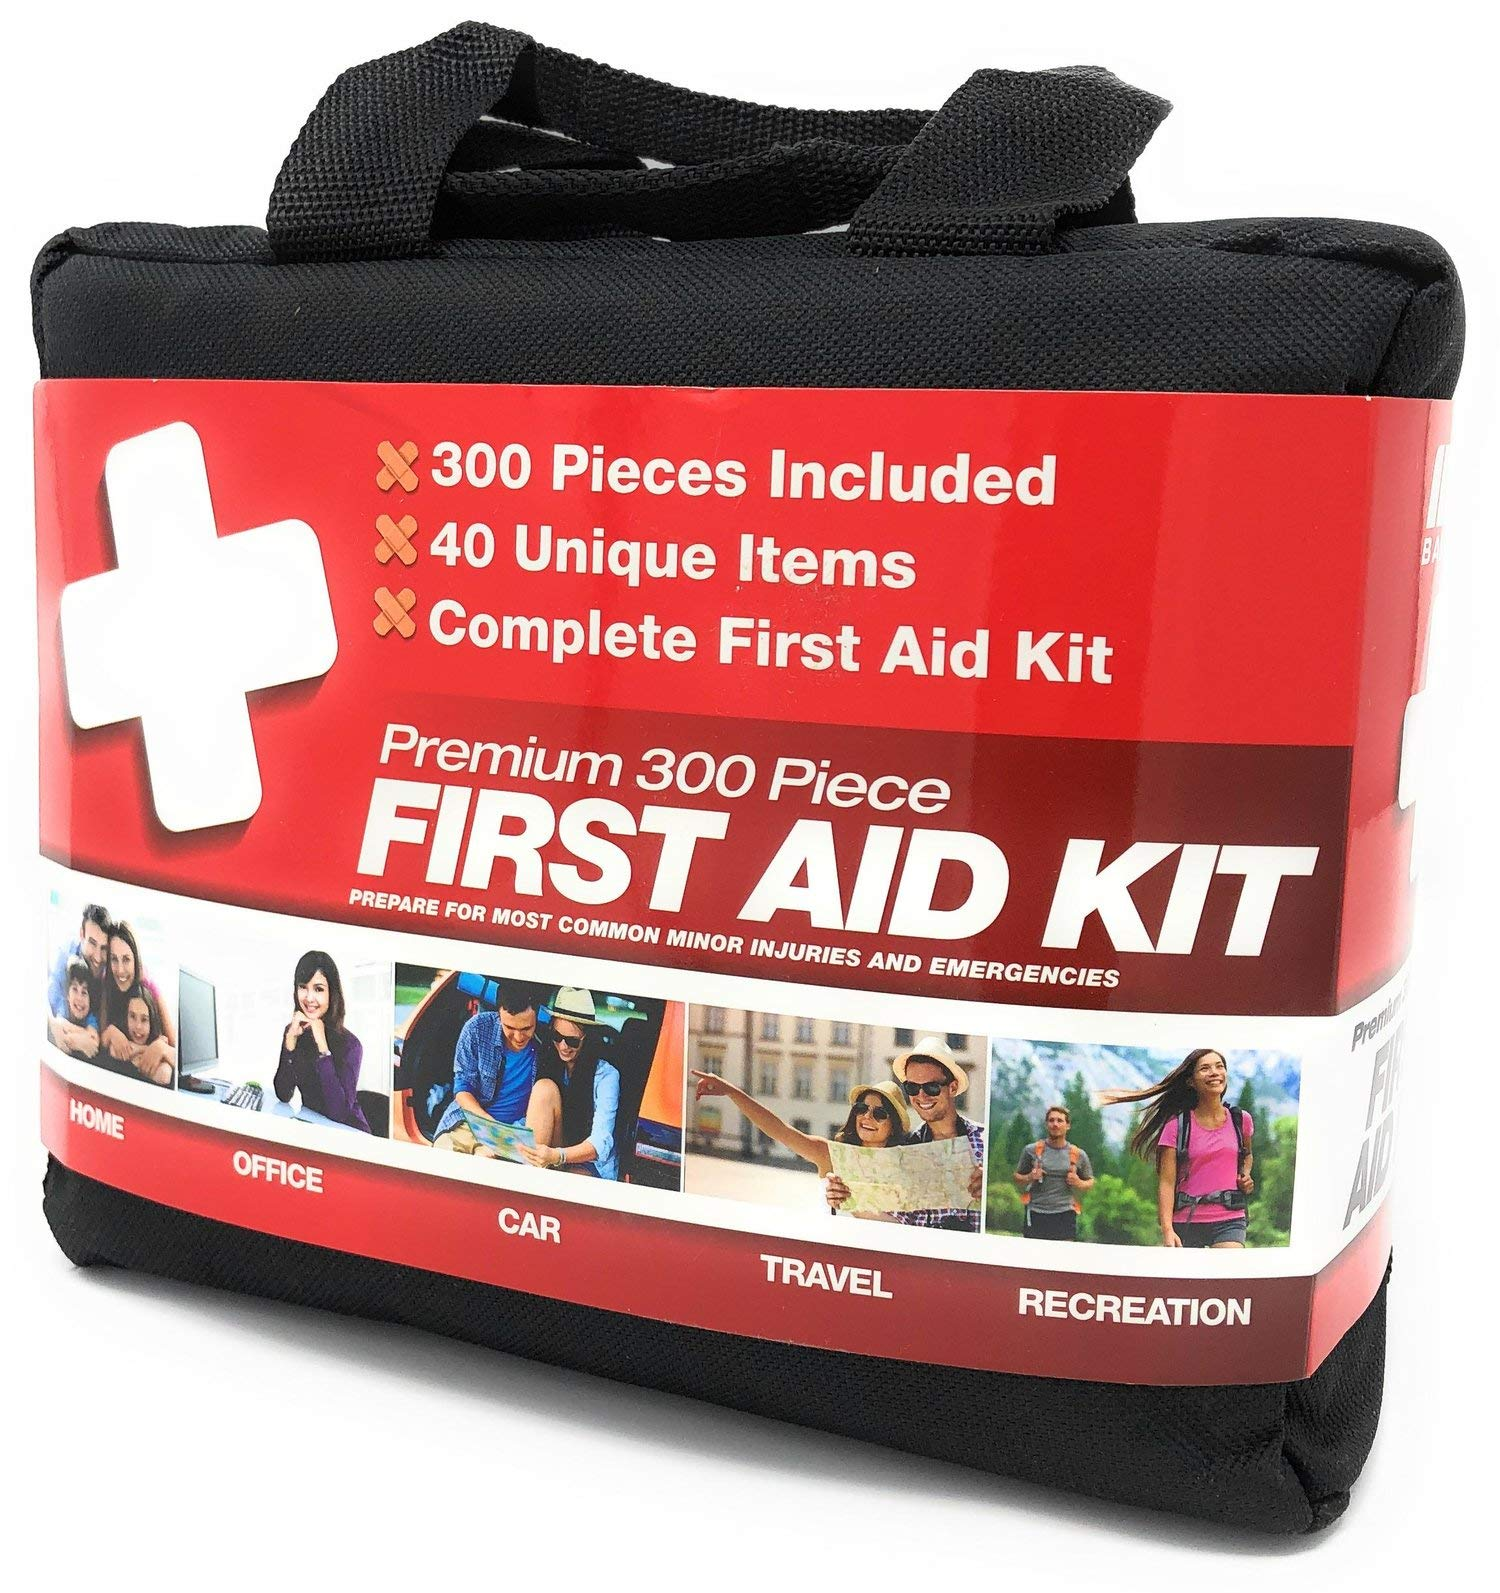 M2 BASICS 300 Piece (40 Unique Items) First Aid Kit w/Bag | Free First Aid Guide | Emergency Medical Supply | for Home, Office, Outdoors, Car, Camping, Travel, Survival, Workplace by M2 BASICS